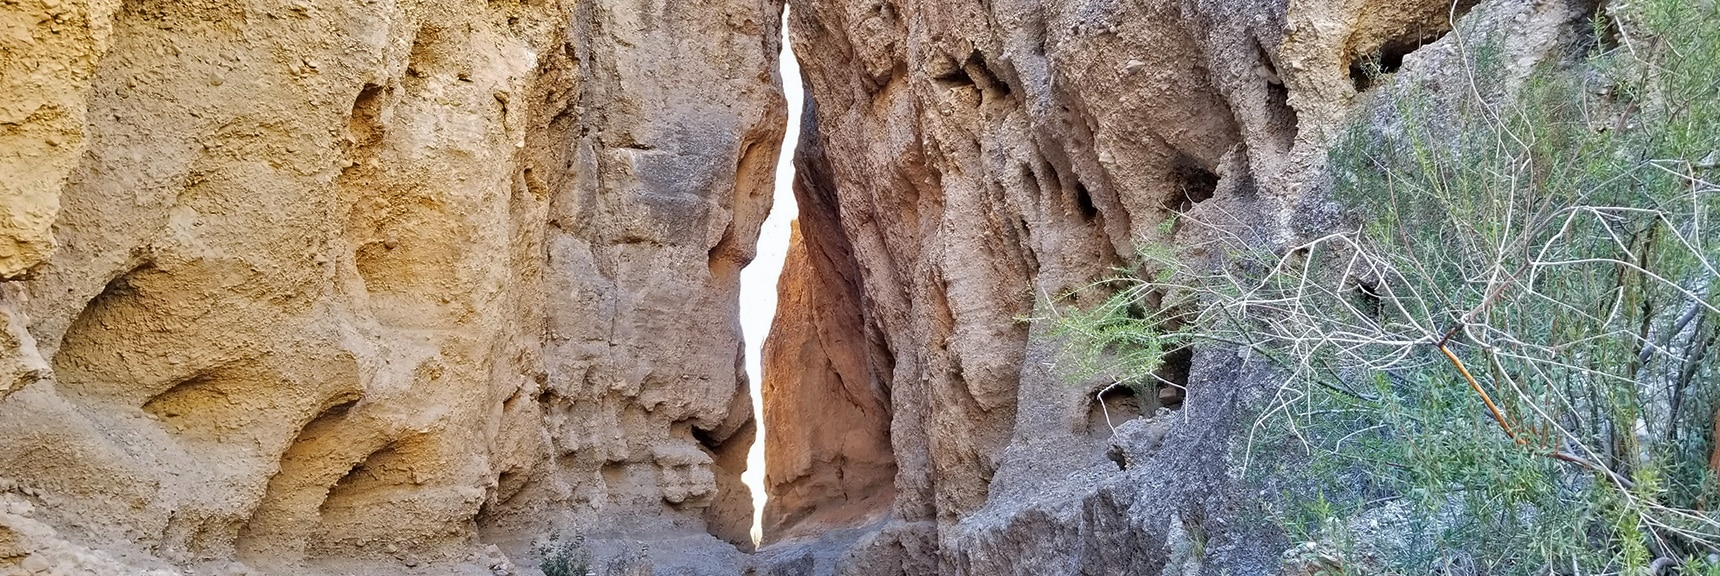 Narrow Portion of the Slot Canyon, Ribbon of Light Ahead | Harris Springs Canyon | Biking from Centennial Hills | Spring Mountains, Nevada